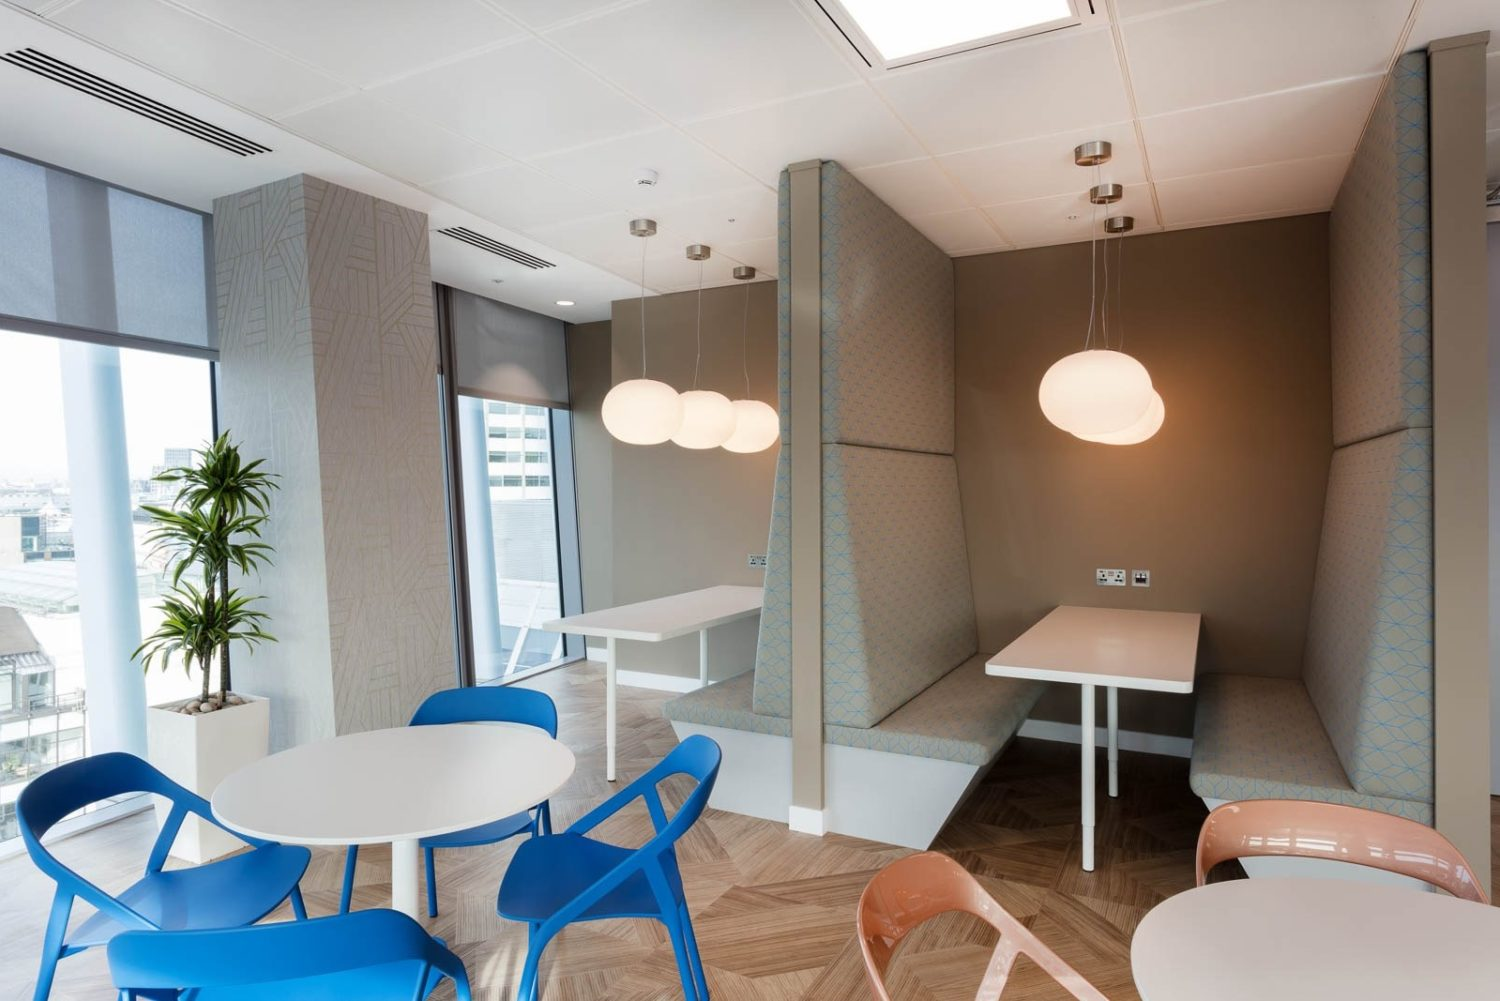 King & Wood mallesons breakout area design